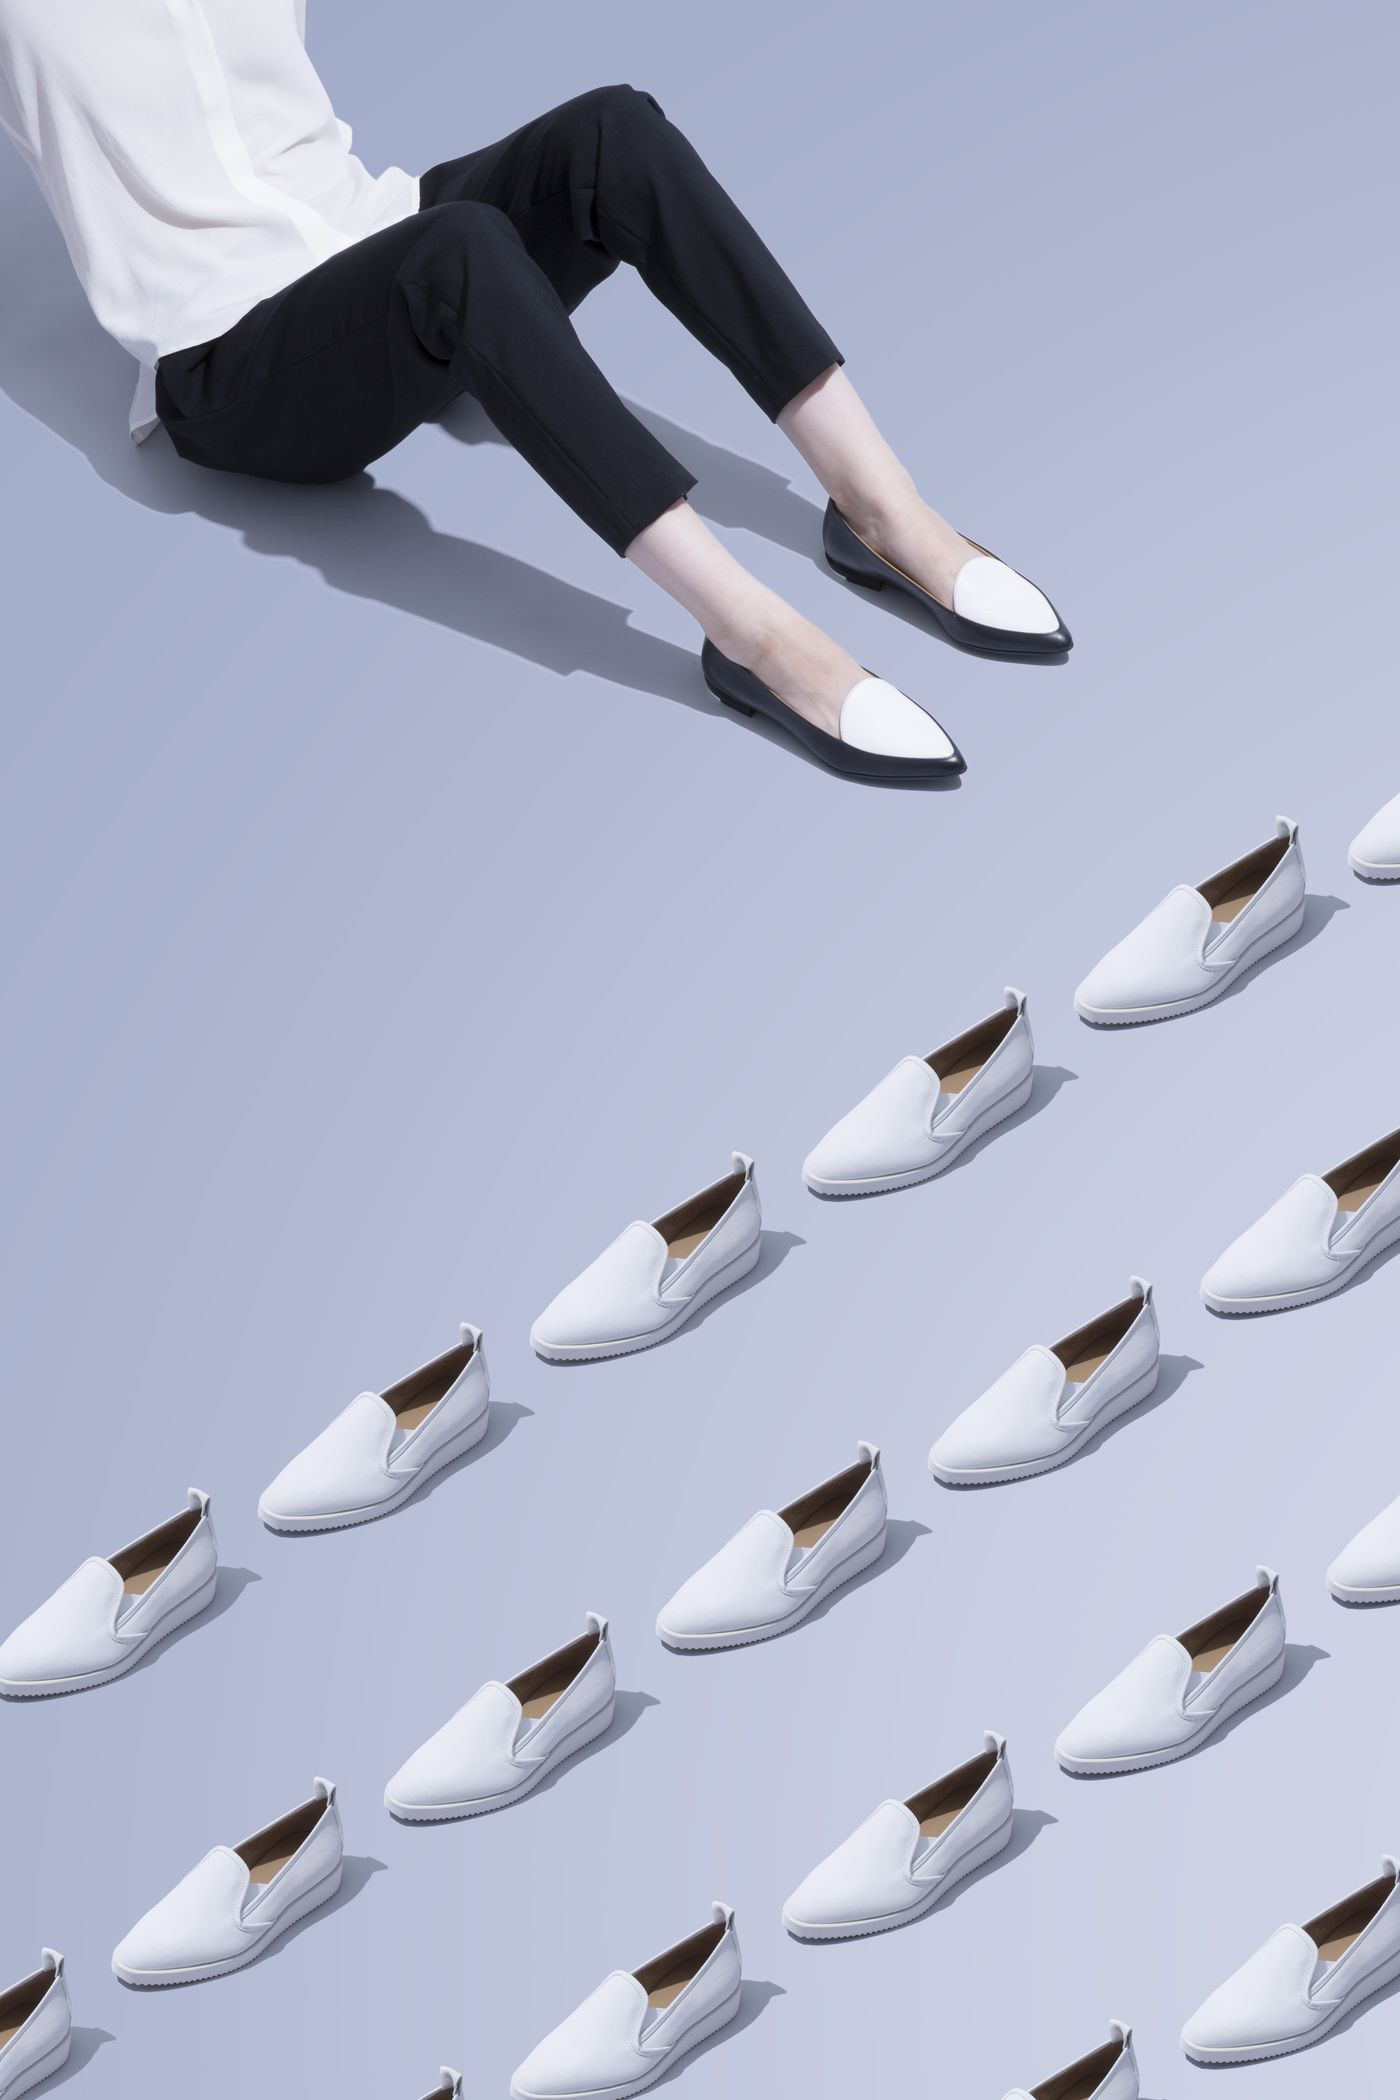 Can Everlane Really Become the Next J Crew? - Racked